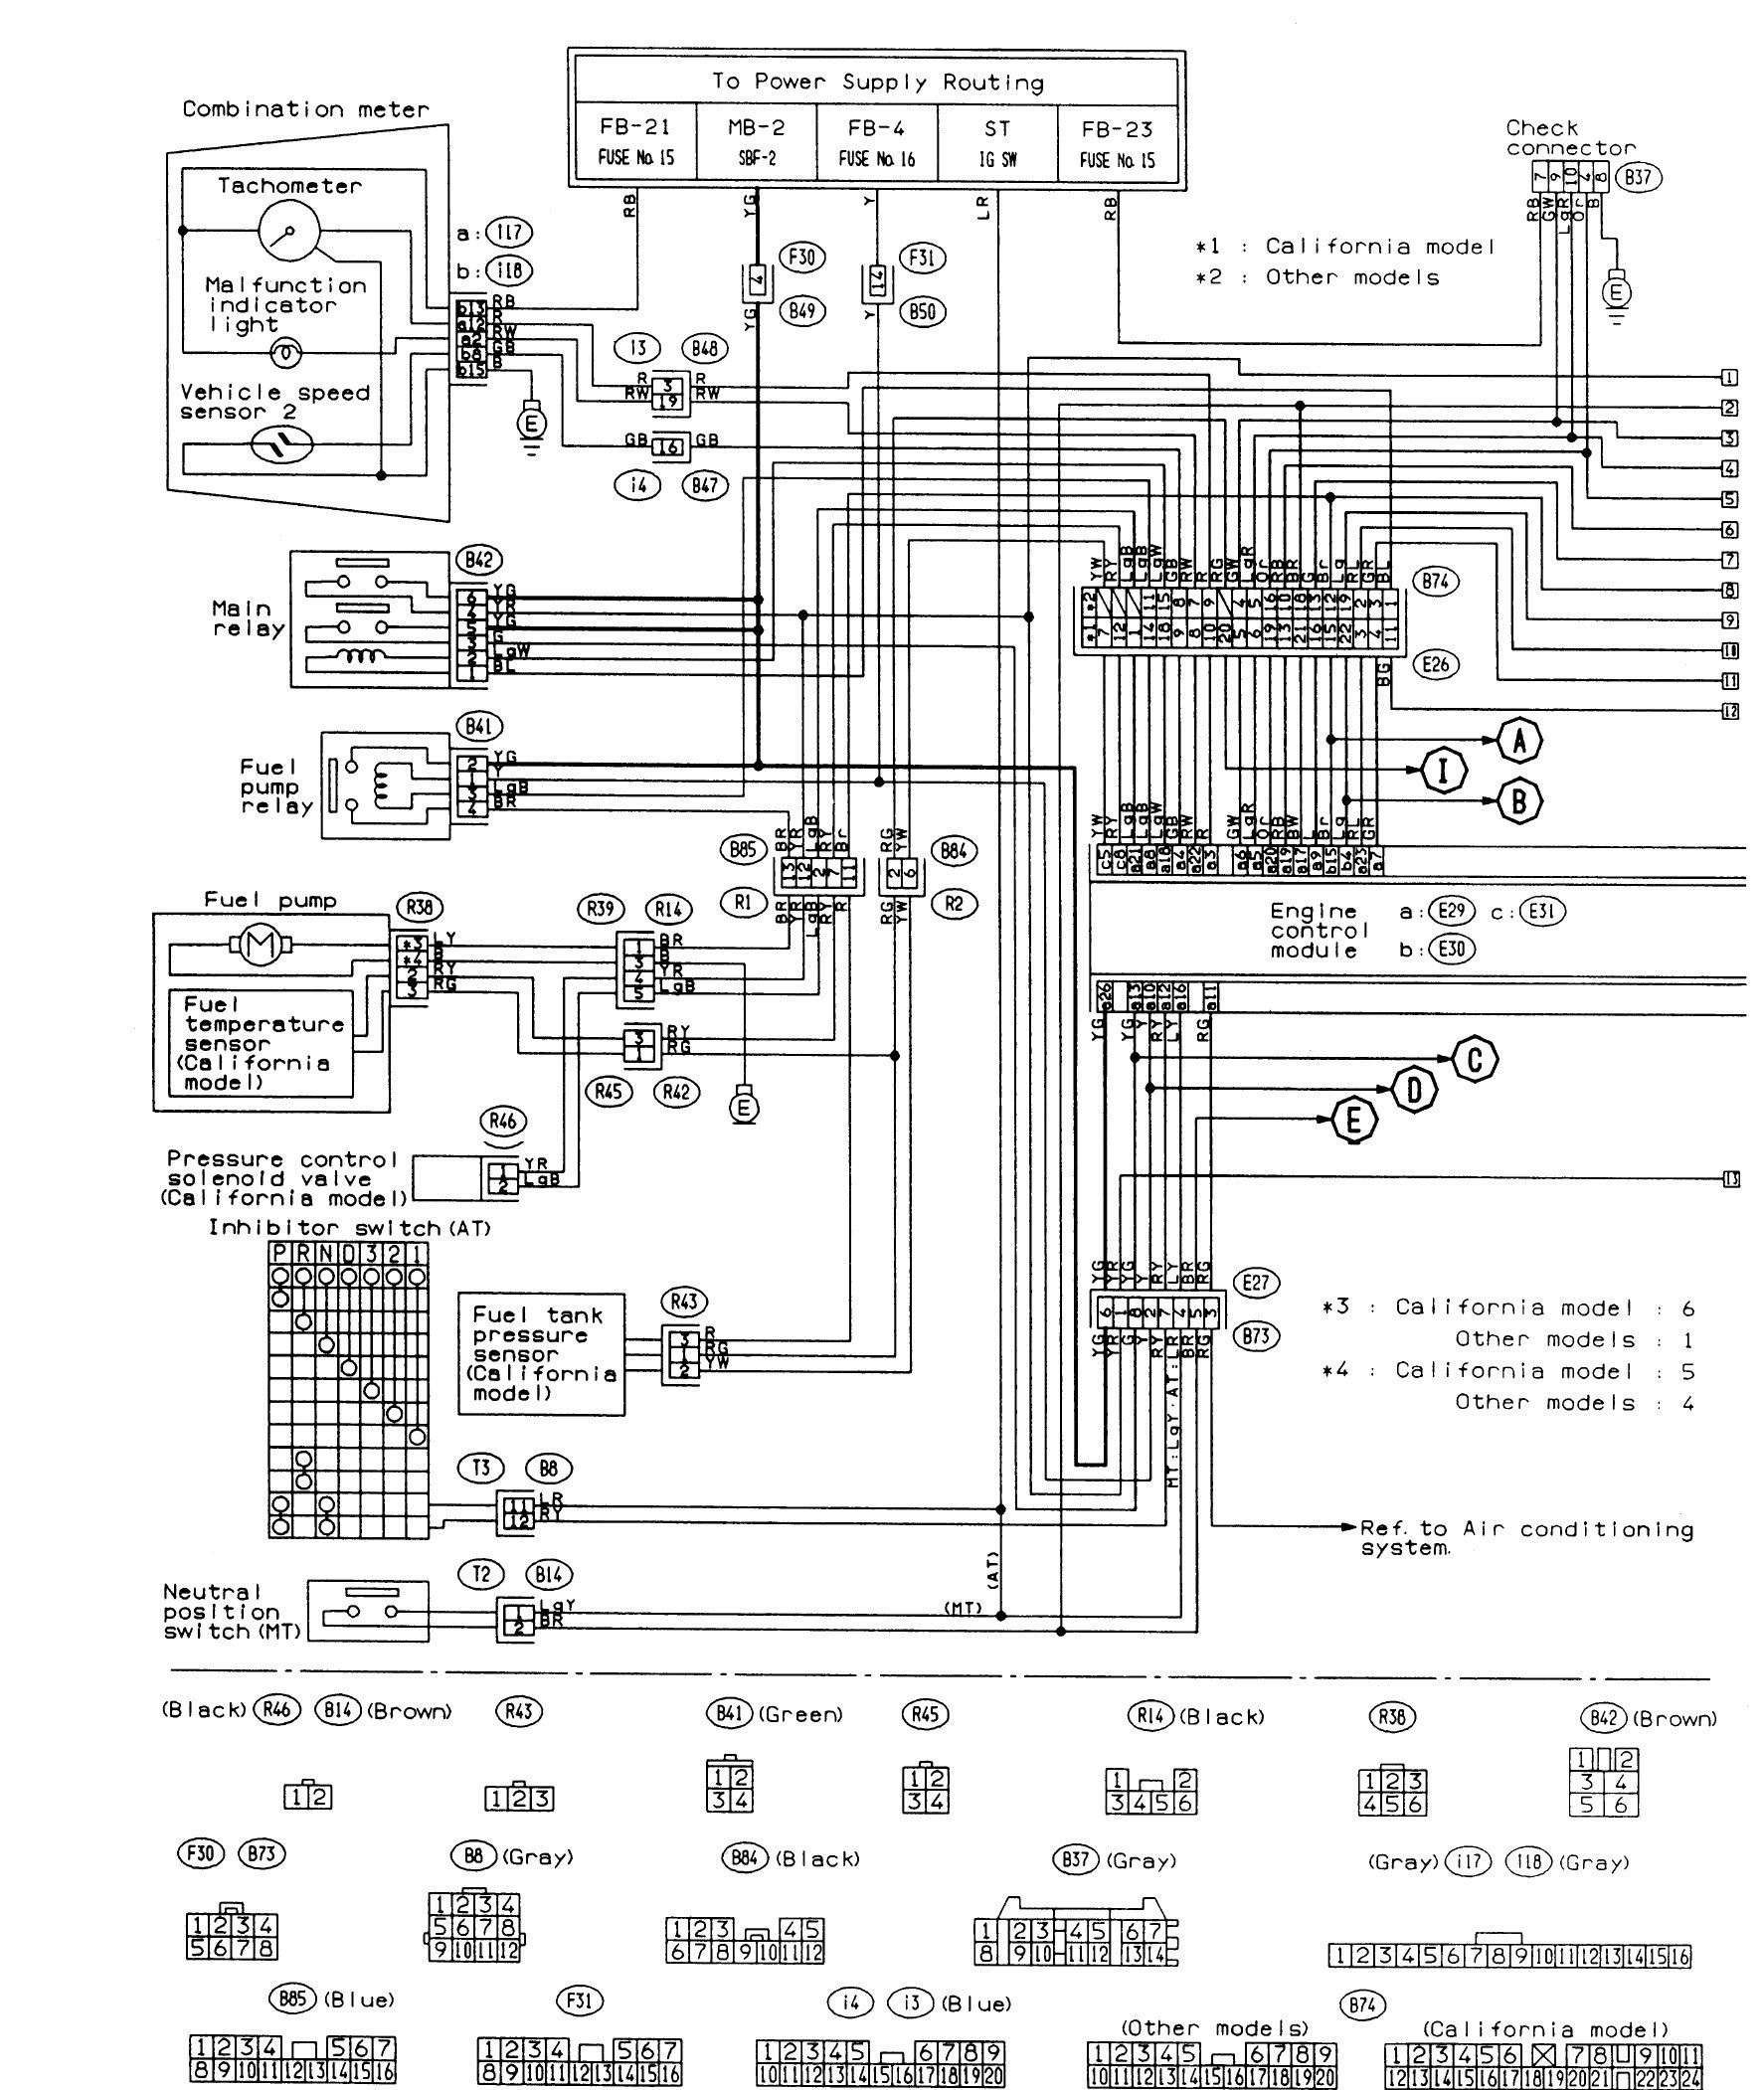 subaru impreza ignition wiring diagram - wiring diagrams relax put-chart -  put-chart.quado.it  put-chart.quado.it